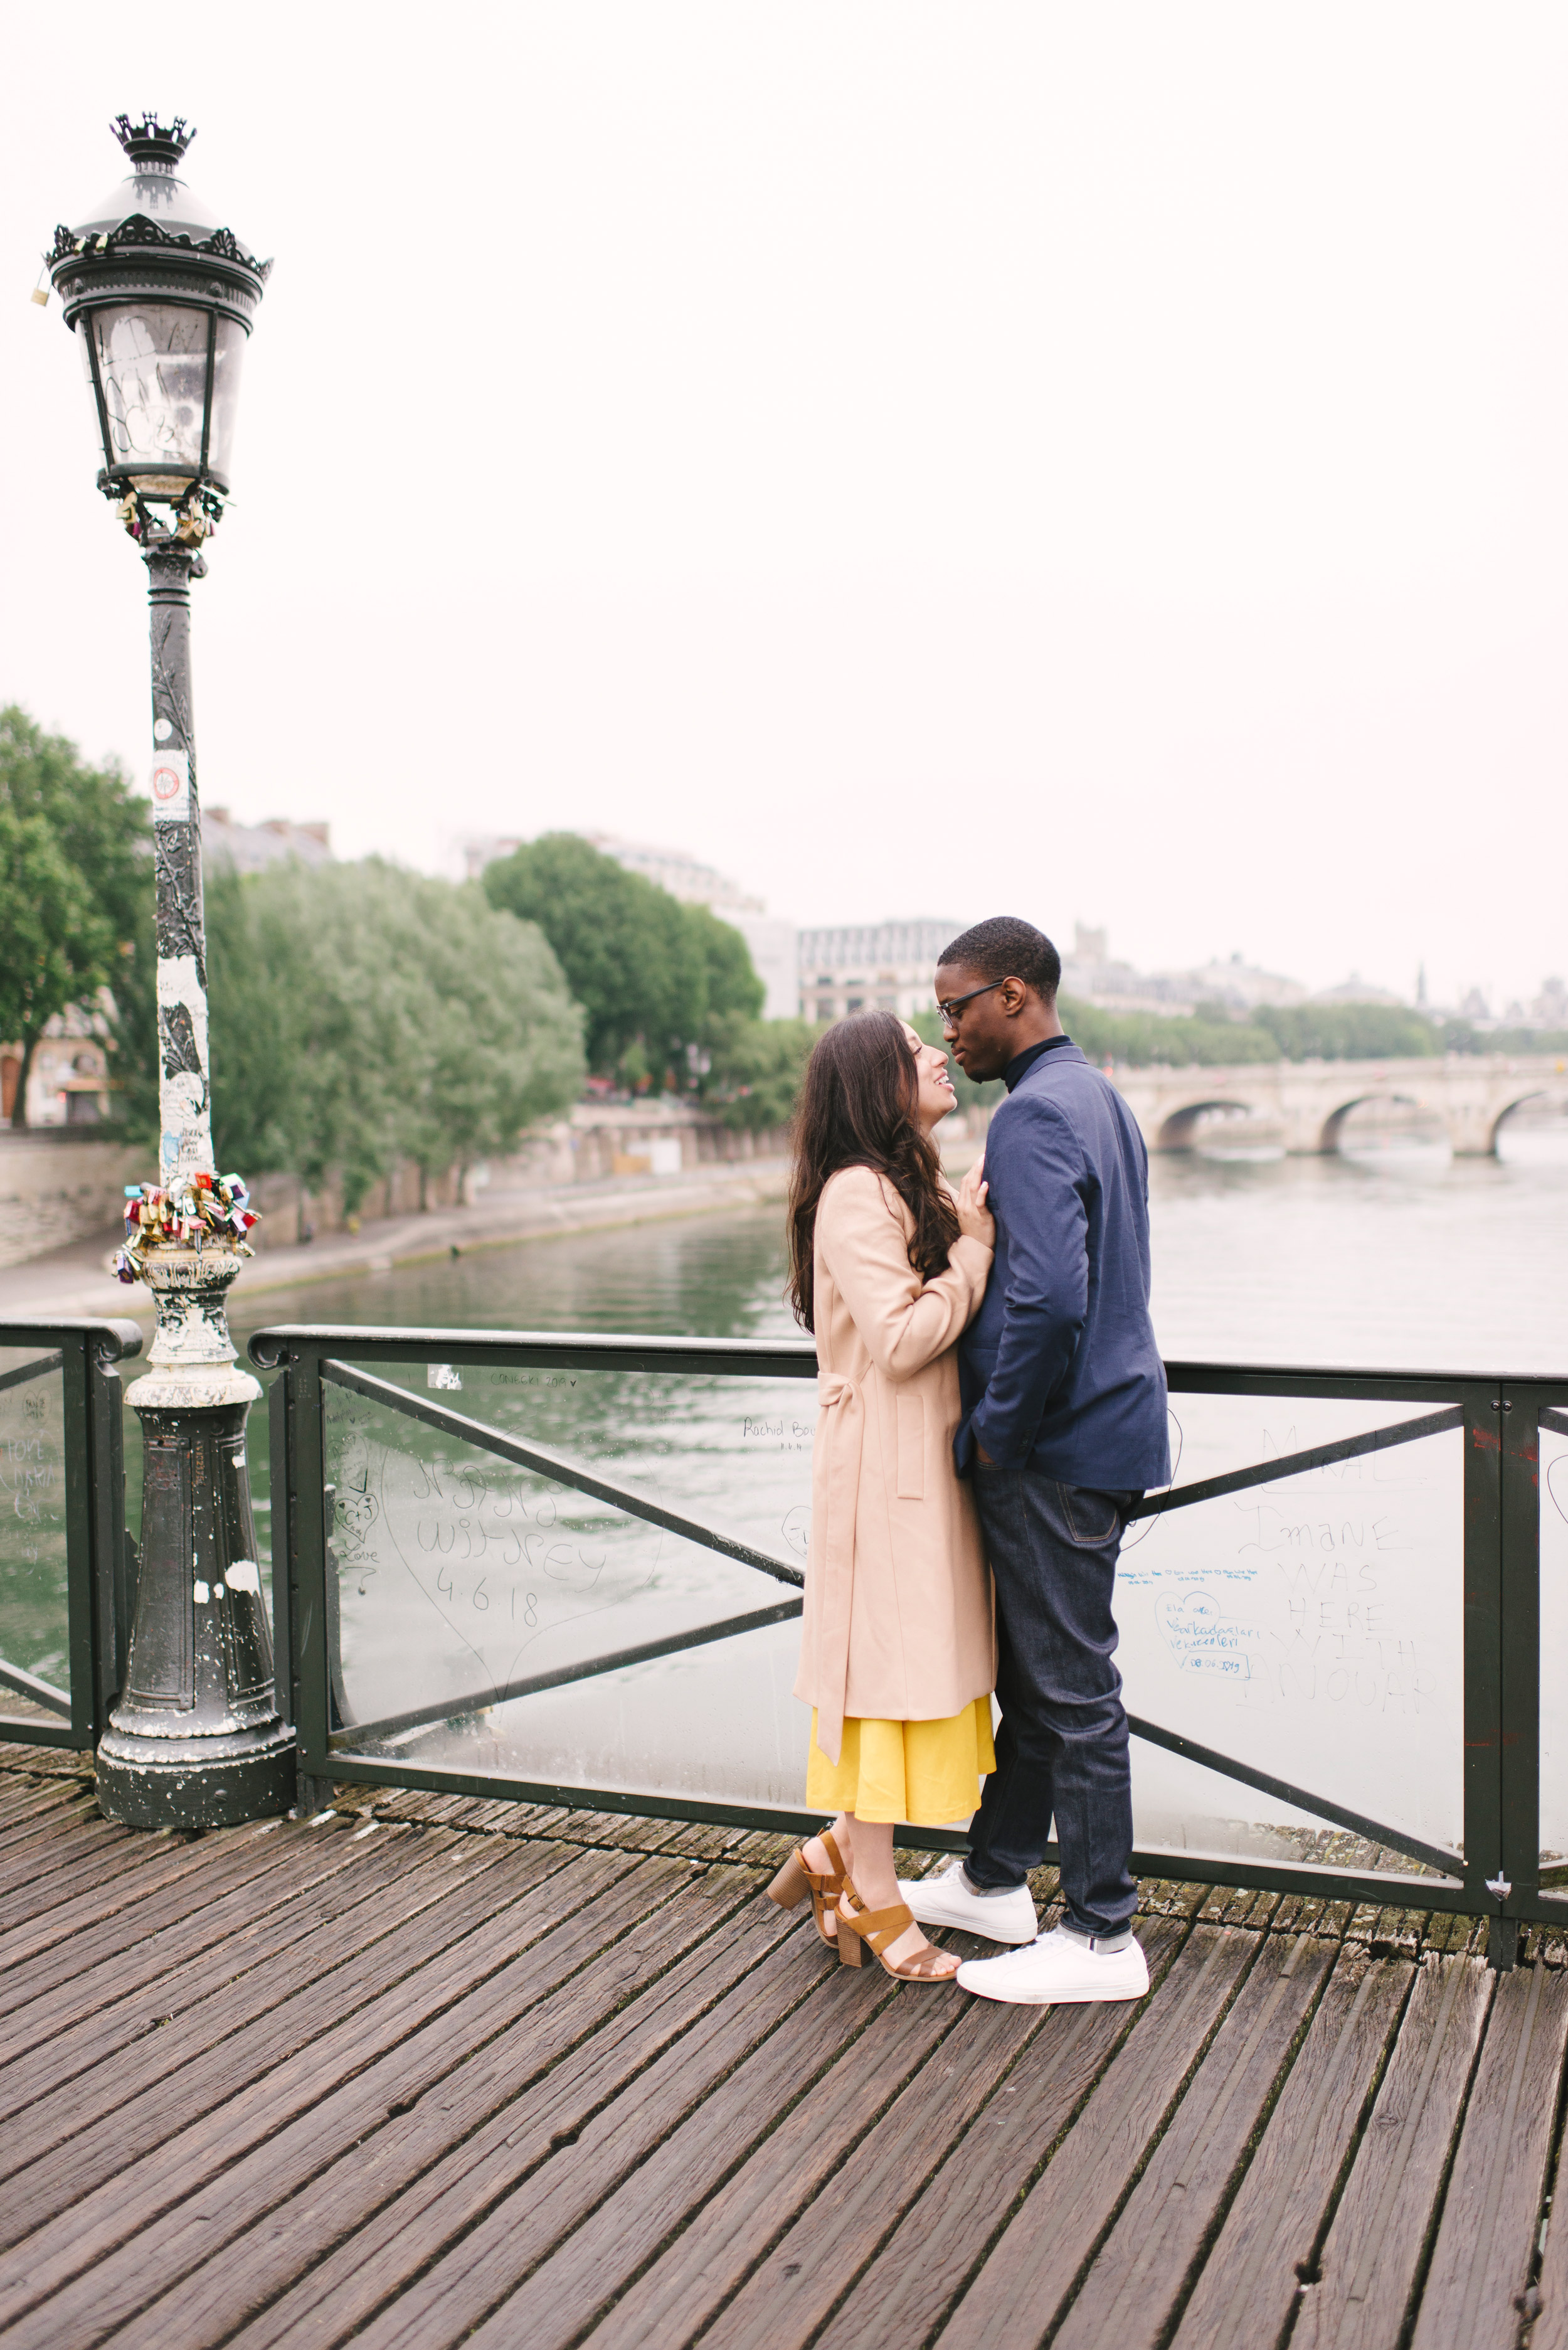 Couple-photoshoot-Paris-Pont-des-arts-Louvre-PalaisRoyale-020.jpg